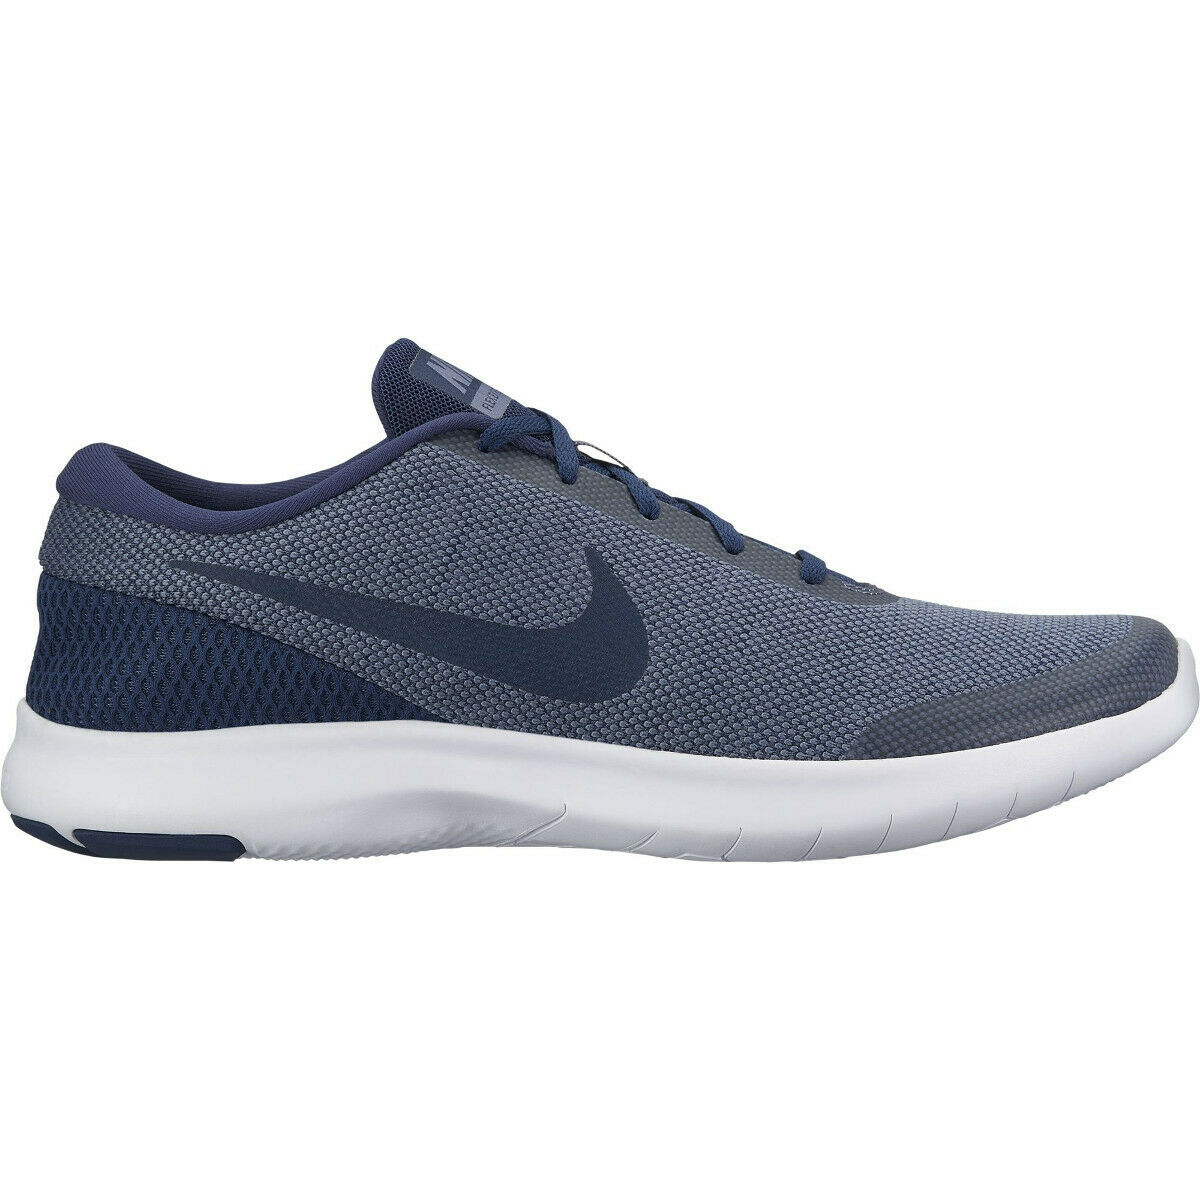 New Nike Flex Experience RN 7 Mens Running shoes Sneaker Midnight Navy Size 11.5